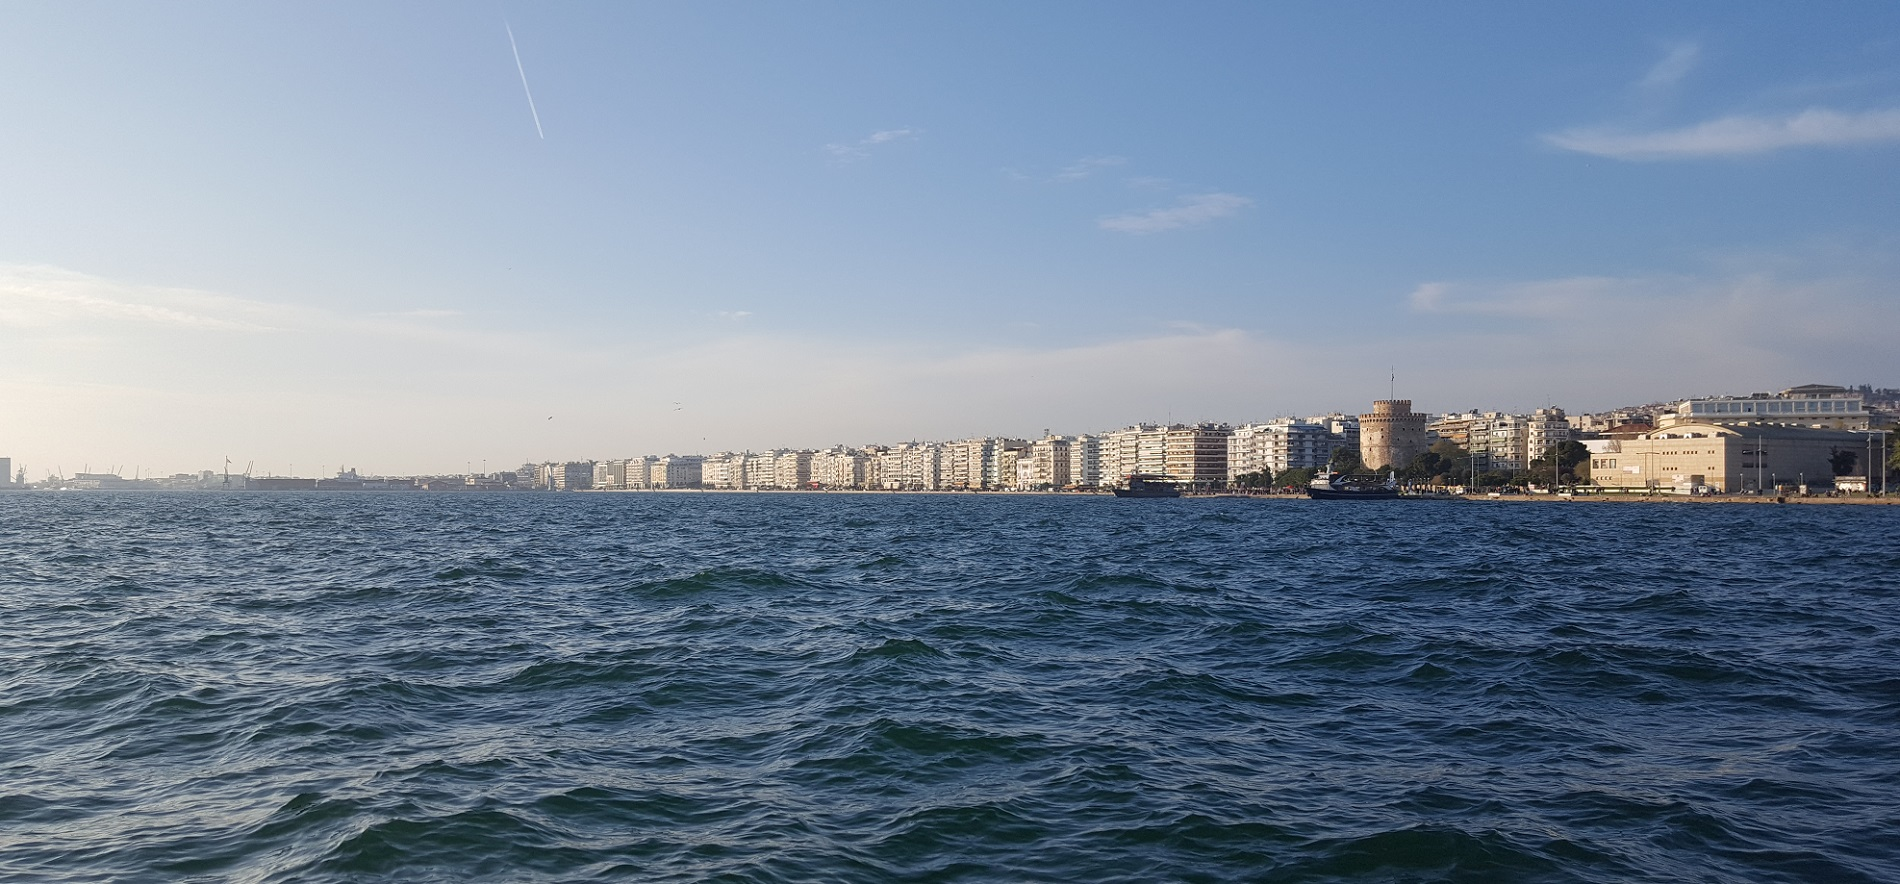 Reasons to visit Thessaloniki